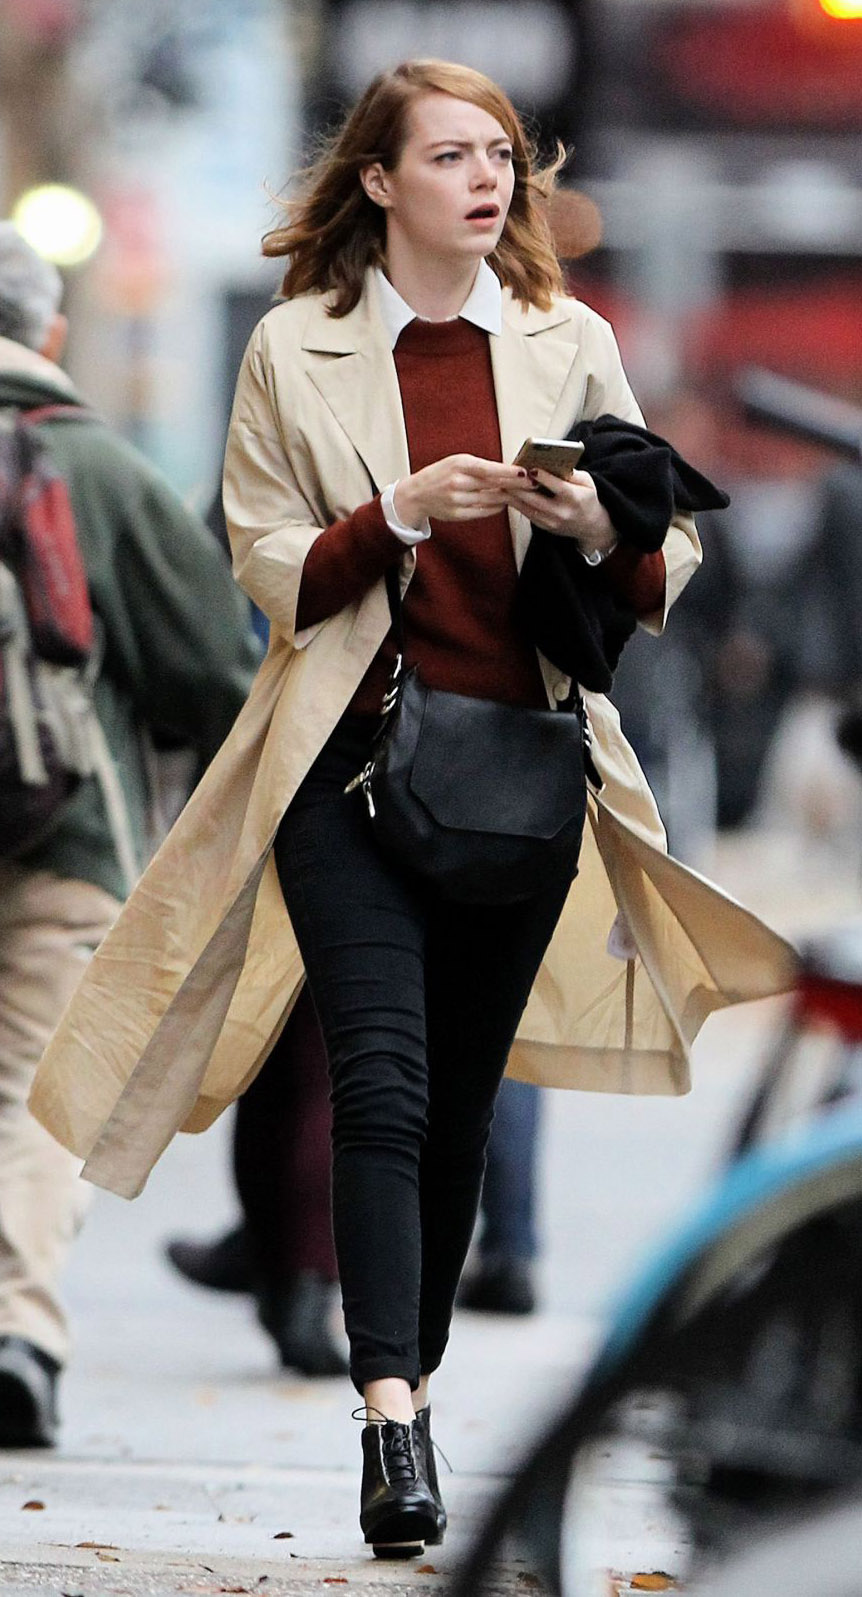 black-skinny-jeans-white-top-collared-shirt-r-burgundy-sweater-tan-jacket-coat-trench-fall-winter-black-shoe-booties-black-bag-emmastone-celebrity-newyork-hairr-lunch.jpg